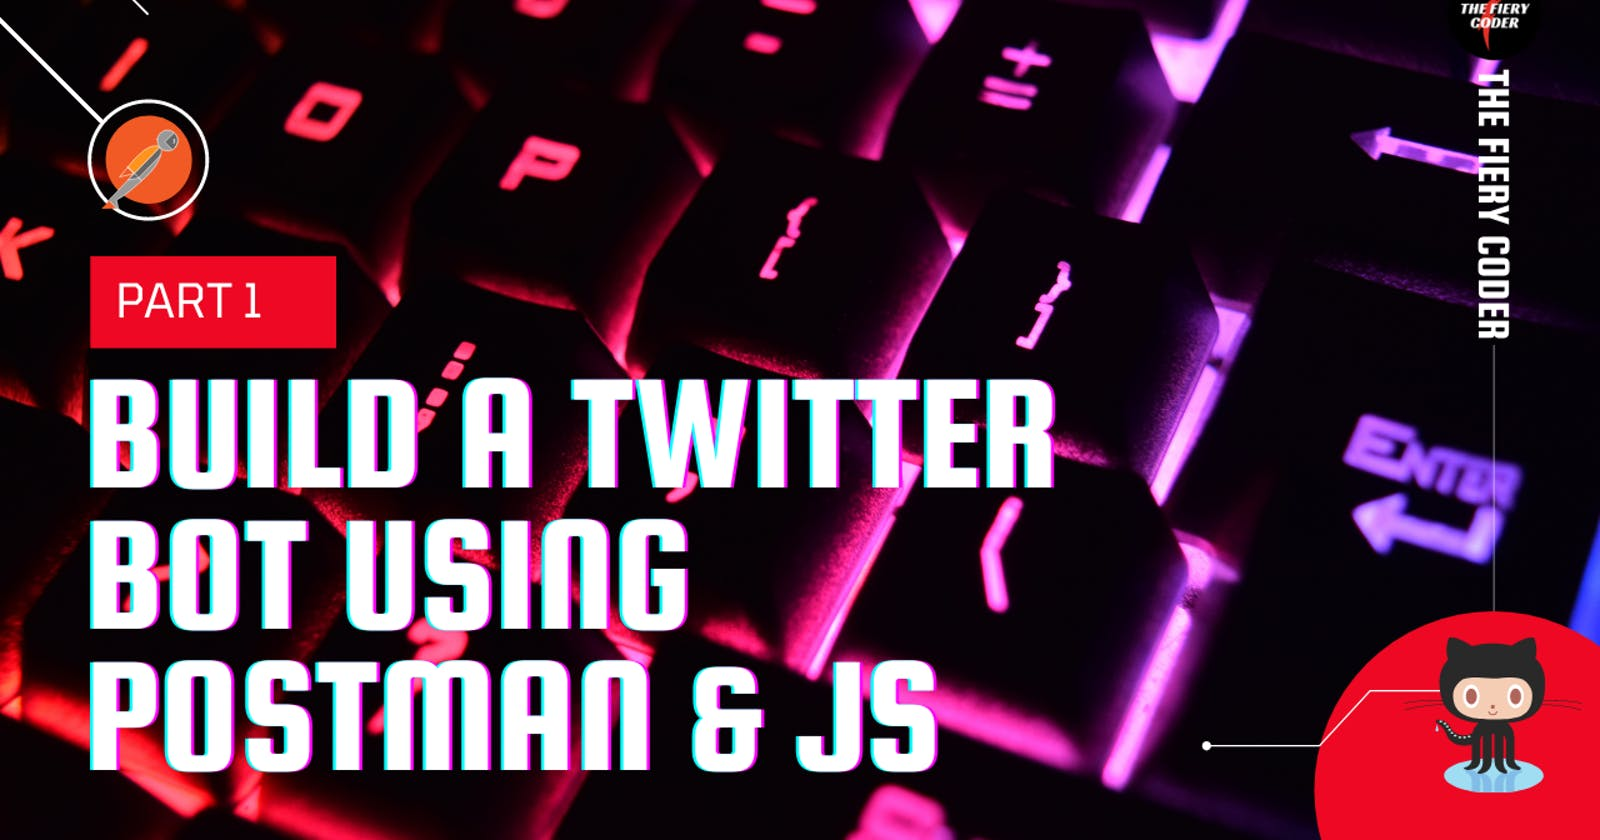 Build a Twitter Bot using Postman and JavaScript💻